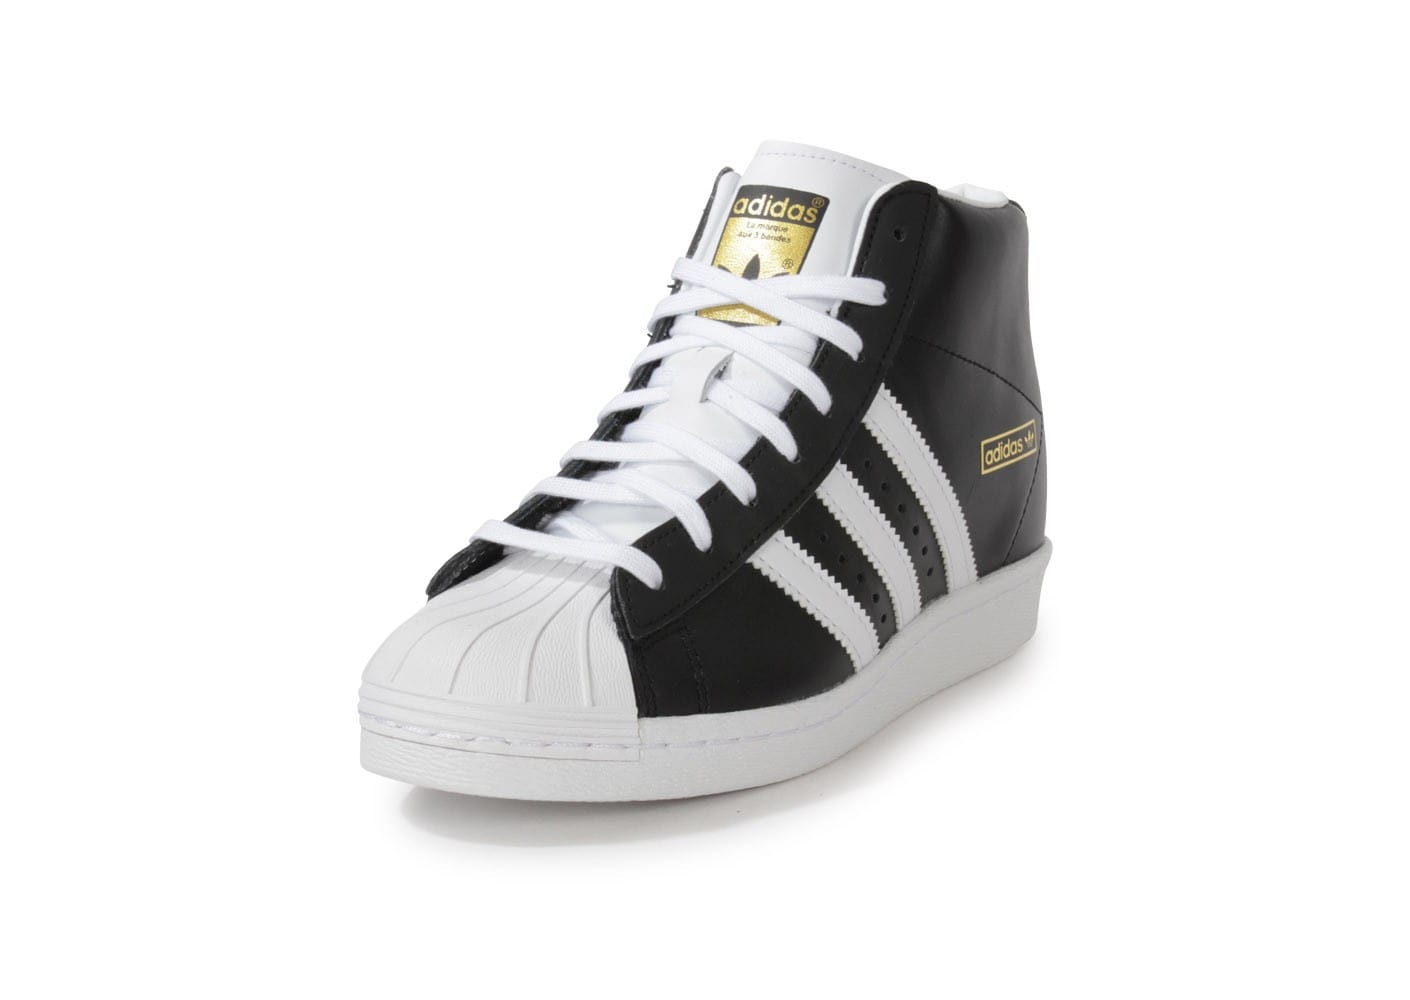 adidas superstar up compensee noire chaussures adidas chausport. Black Bedroom Furniture Sets. Home Design Ideas